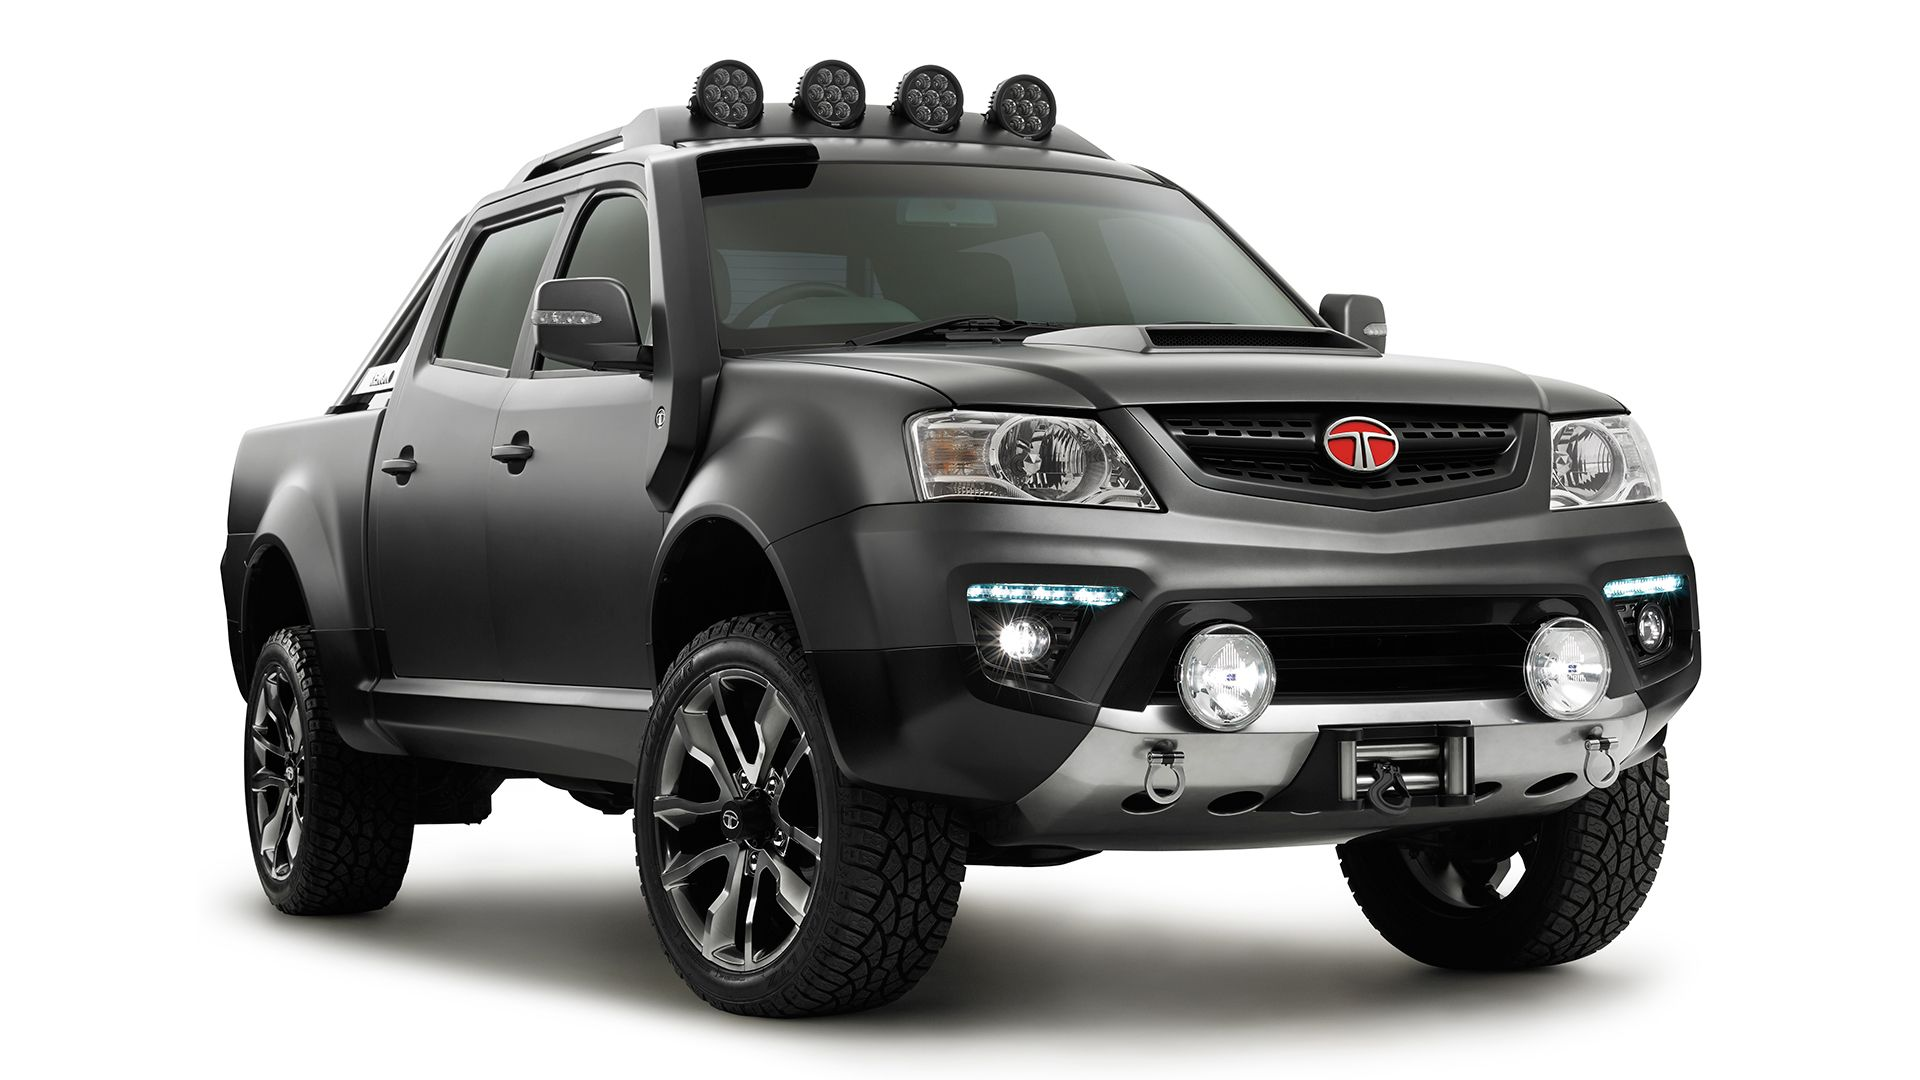 At the national outdoors show in melbourne tata revealed xenon tuff truck concept tata xenon tuff trck concept was designed by julian quincey